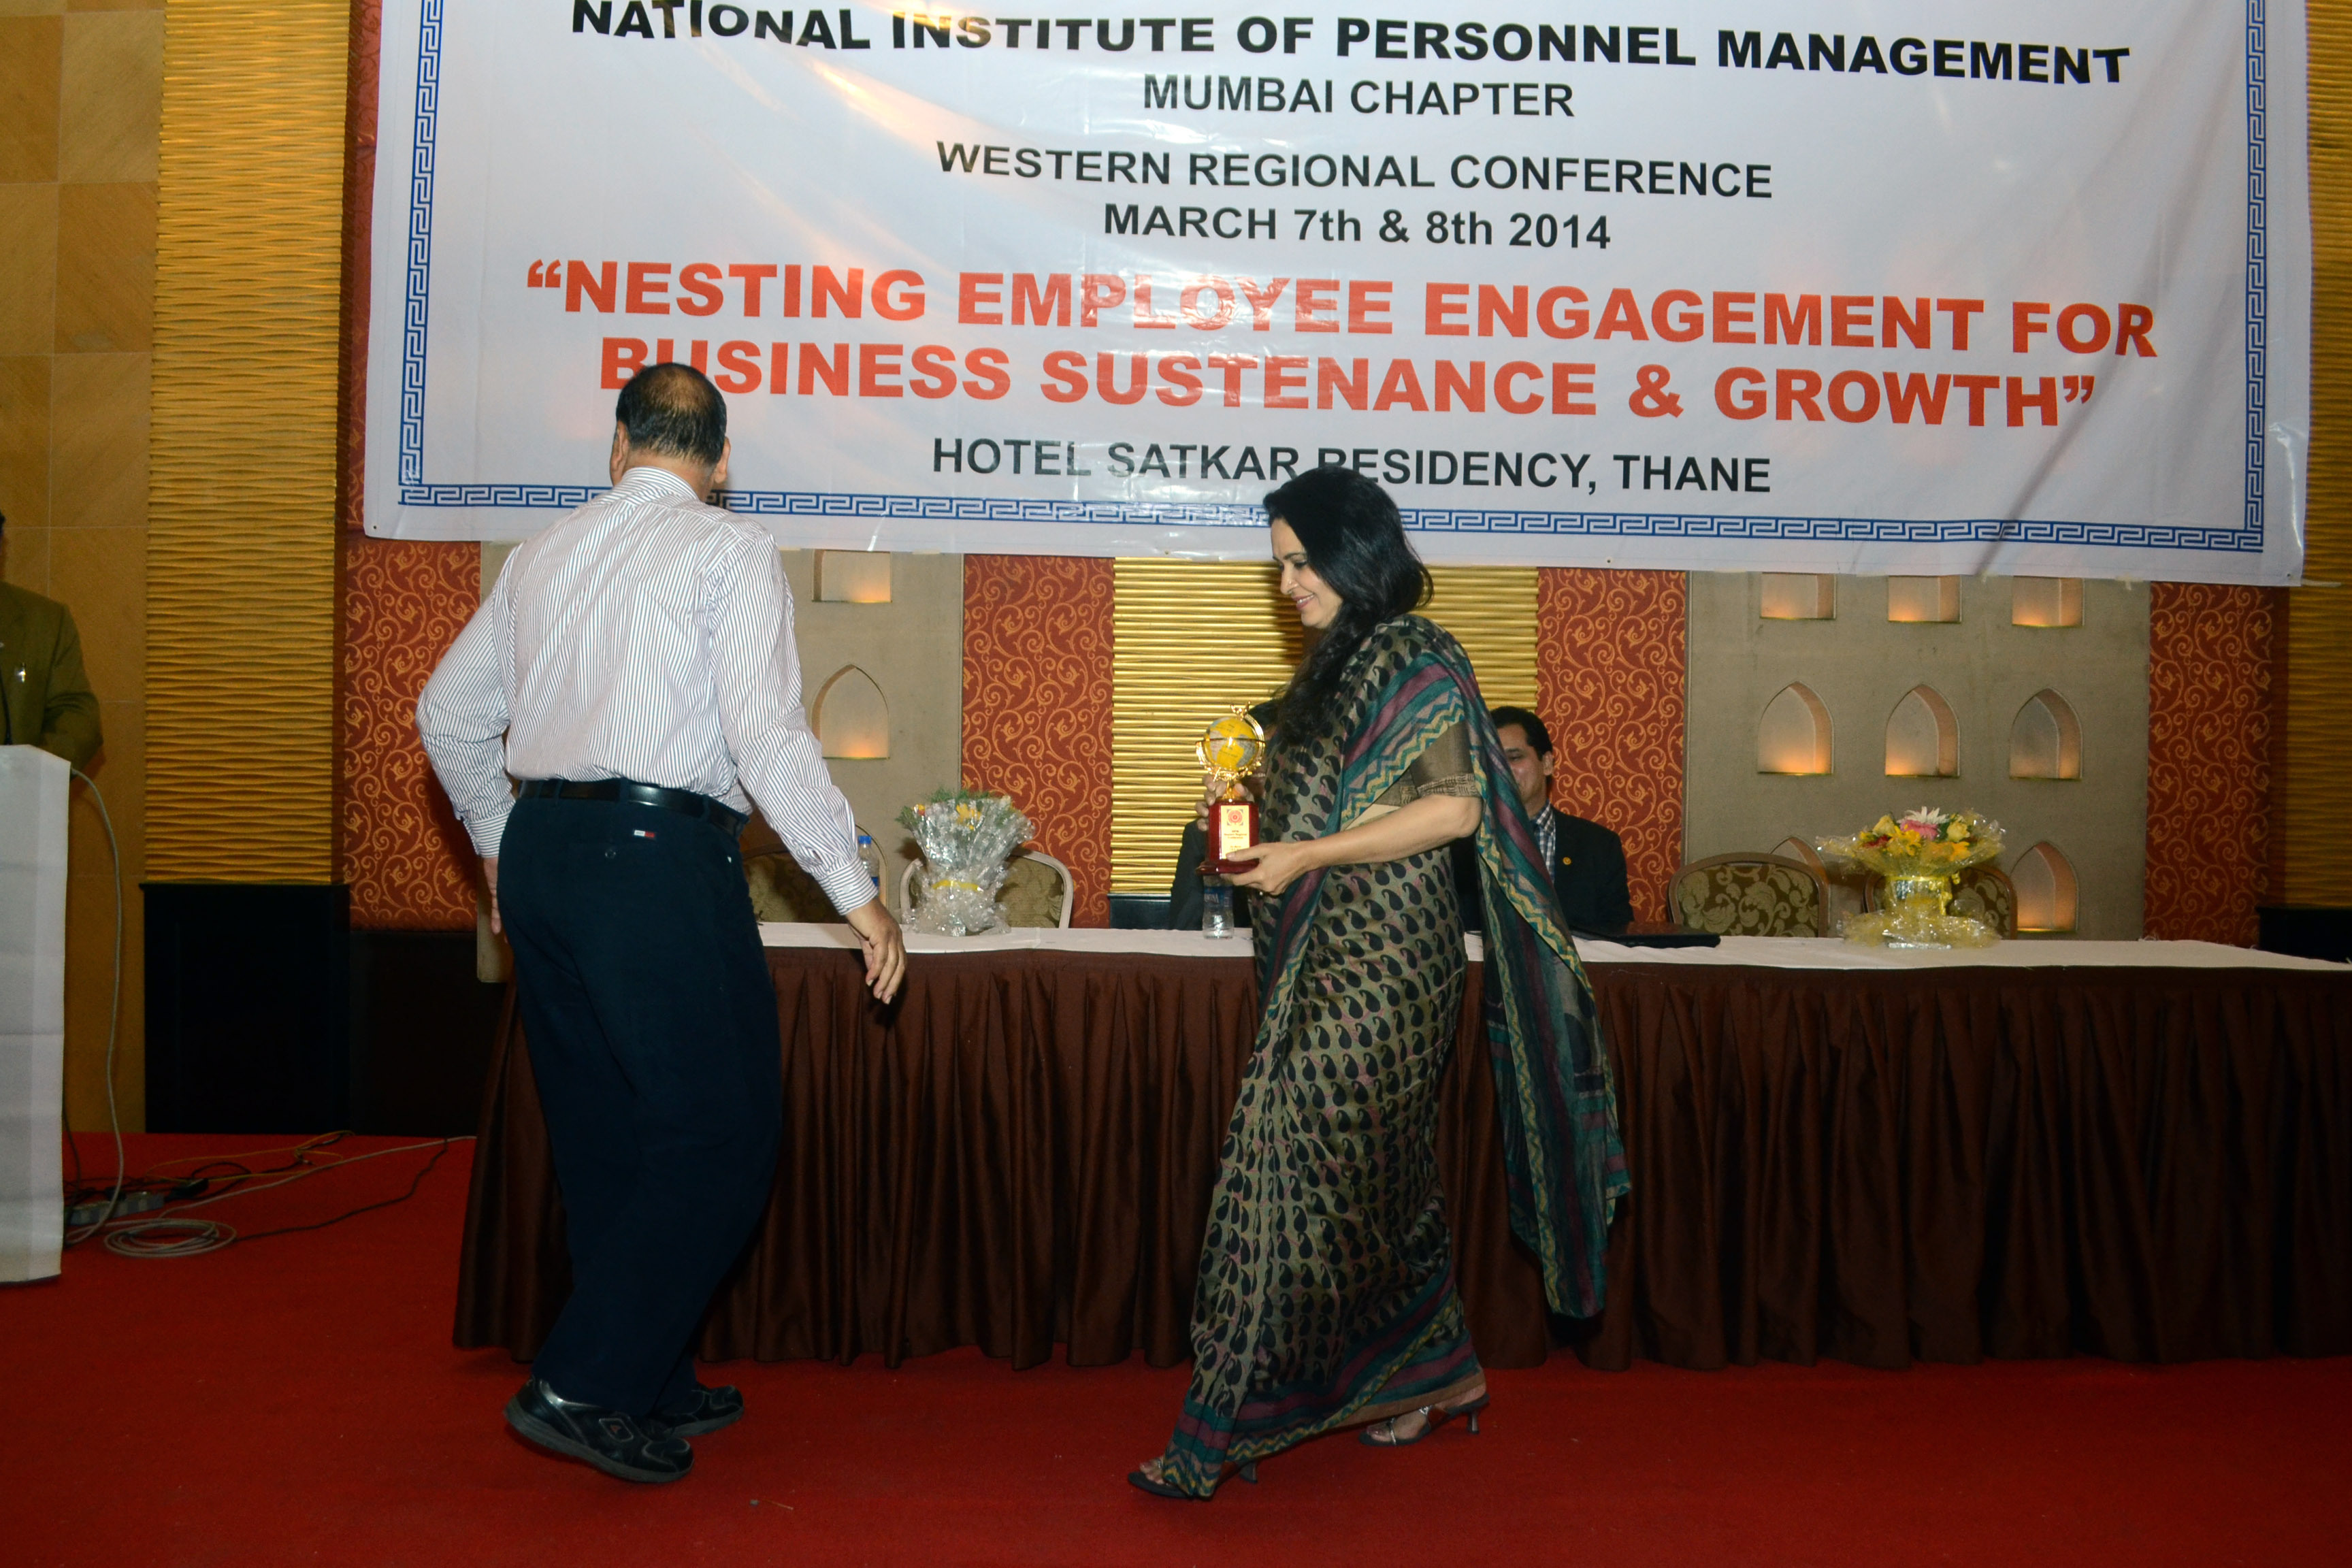 Leads the conference of Association of HR Professionals in India